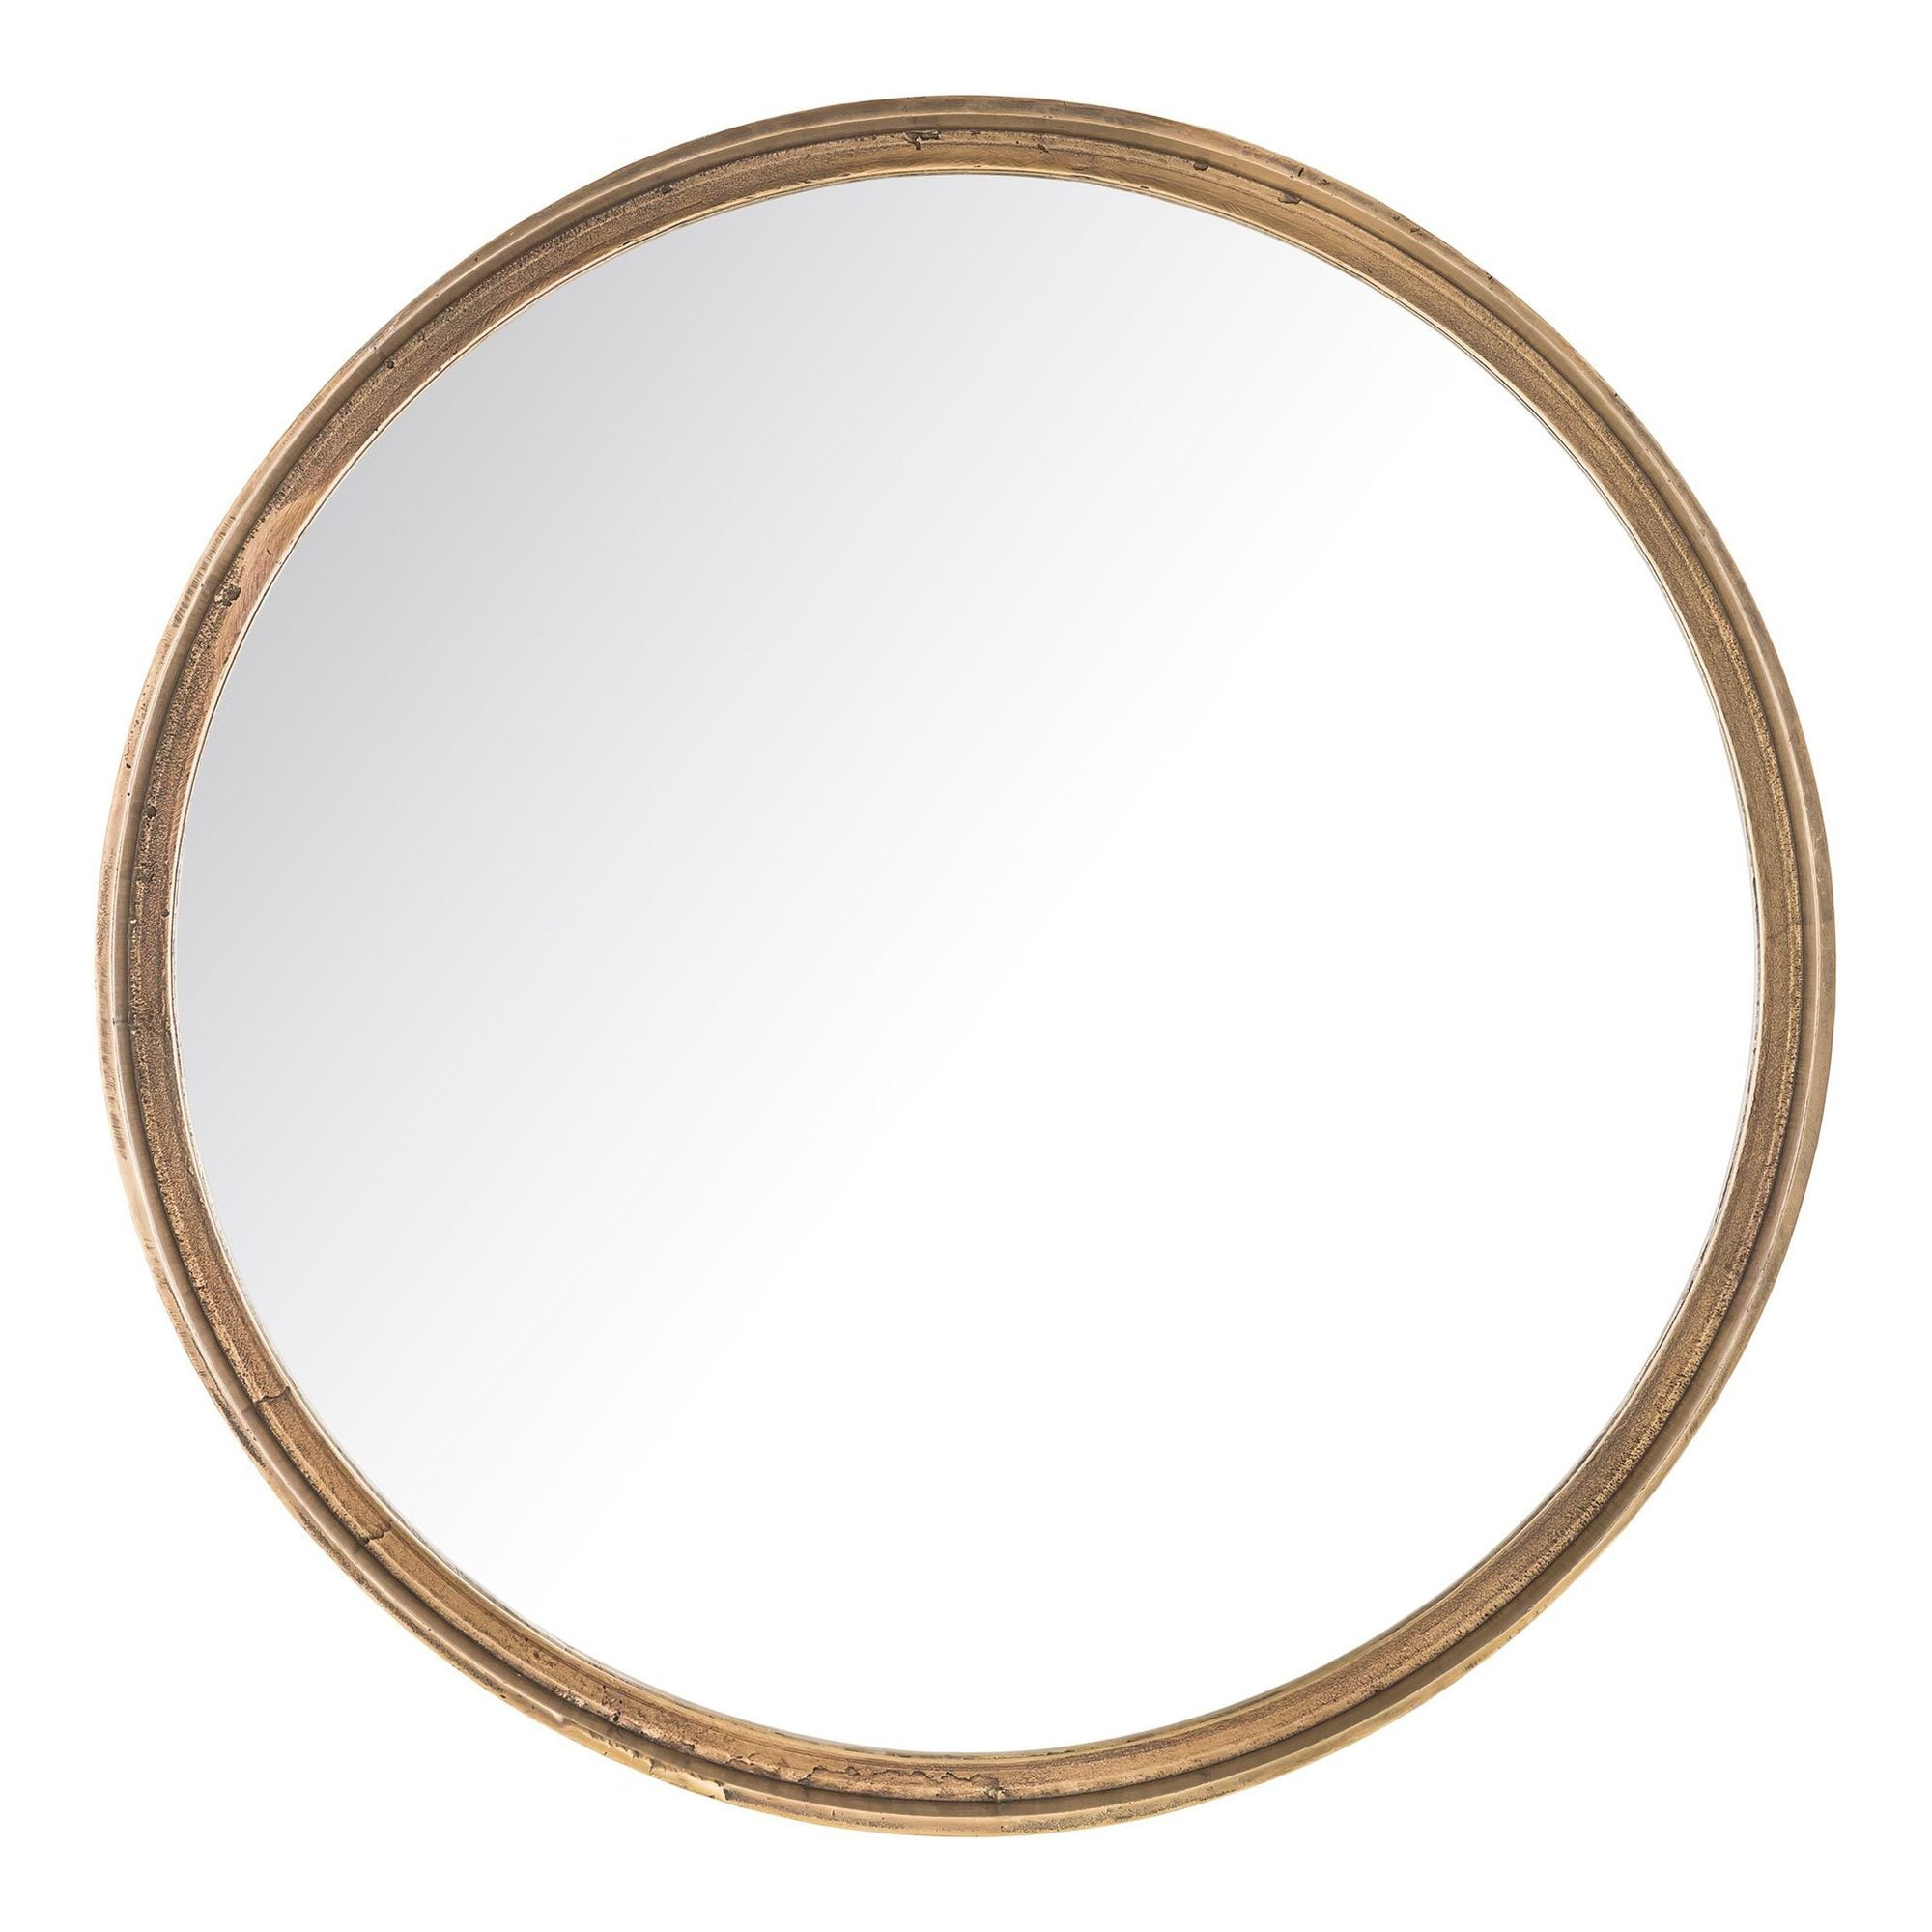 MOES-WINCHESTER MIRROR SMALL-Wall Mirrors-MODTEMPO